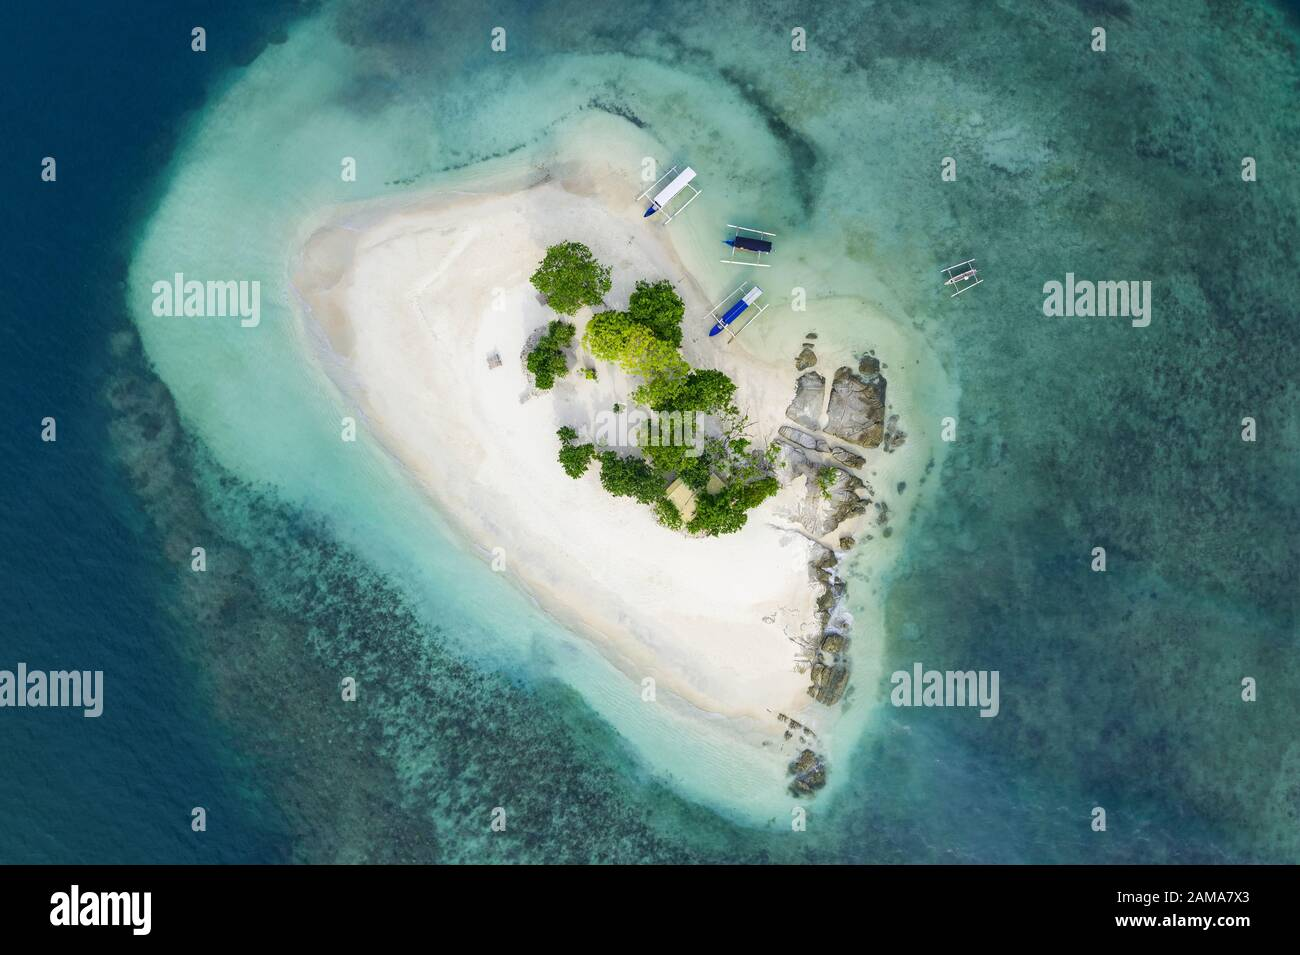 View from above, stunning aerial view of Gili Kedis with a beautiful white sand beach bathed by a turquoise and crystal clear water. Stock Photo